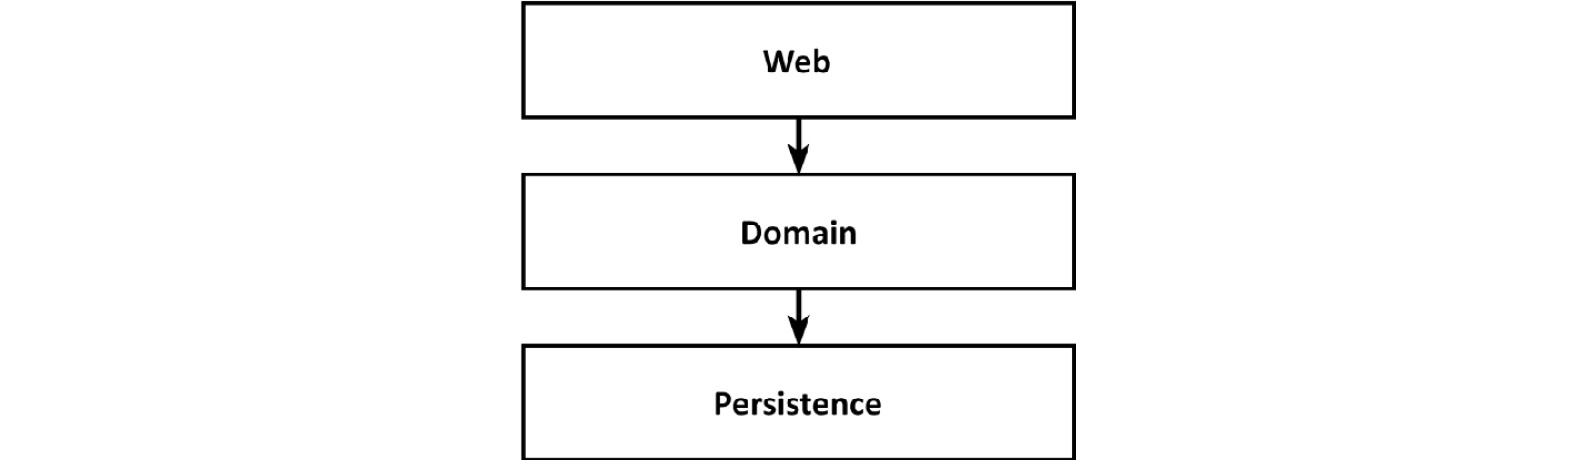 Figure 1.1: A conventional web application architecture consists of a web layer, a domain layer, and a persistence layer